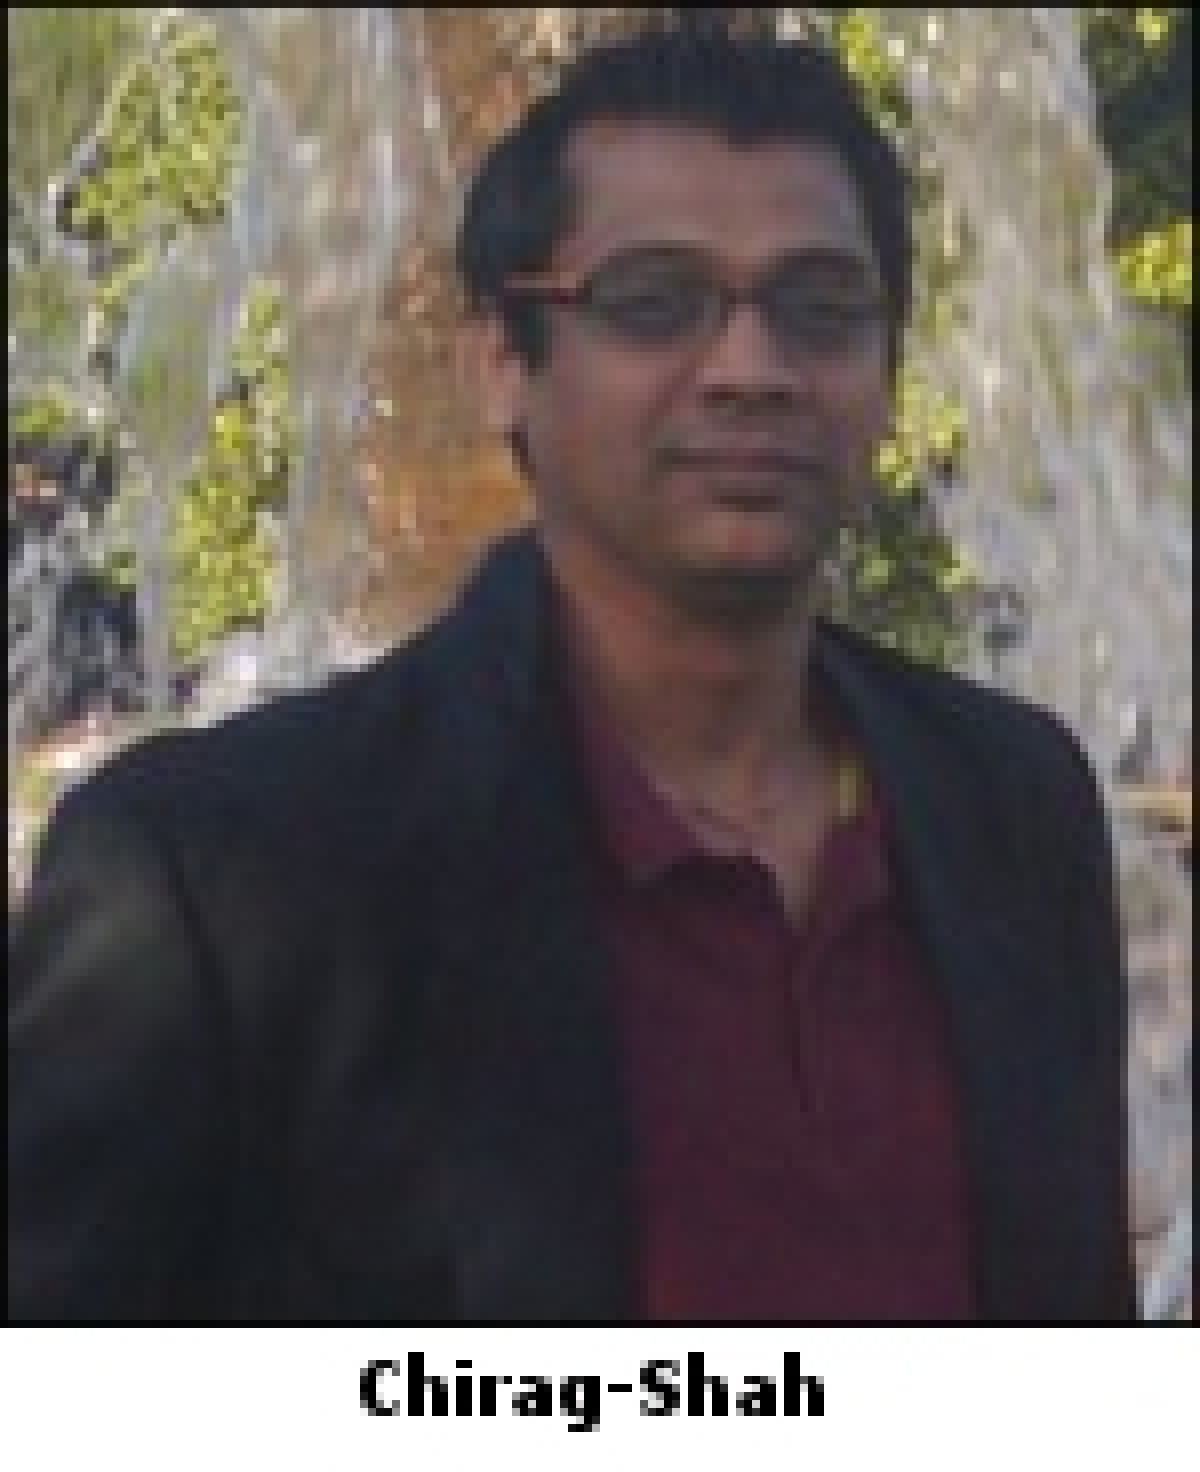 Chirag Shah joins mobile ad network, Seventynine